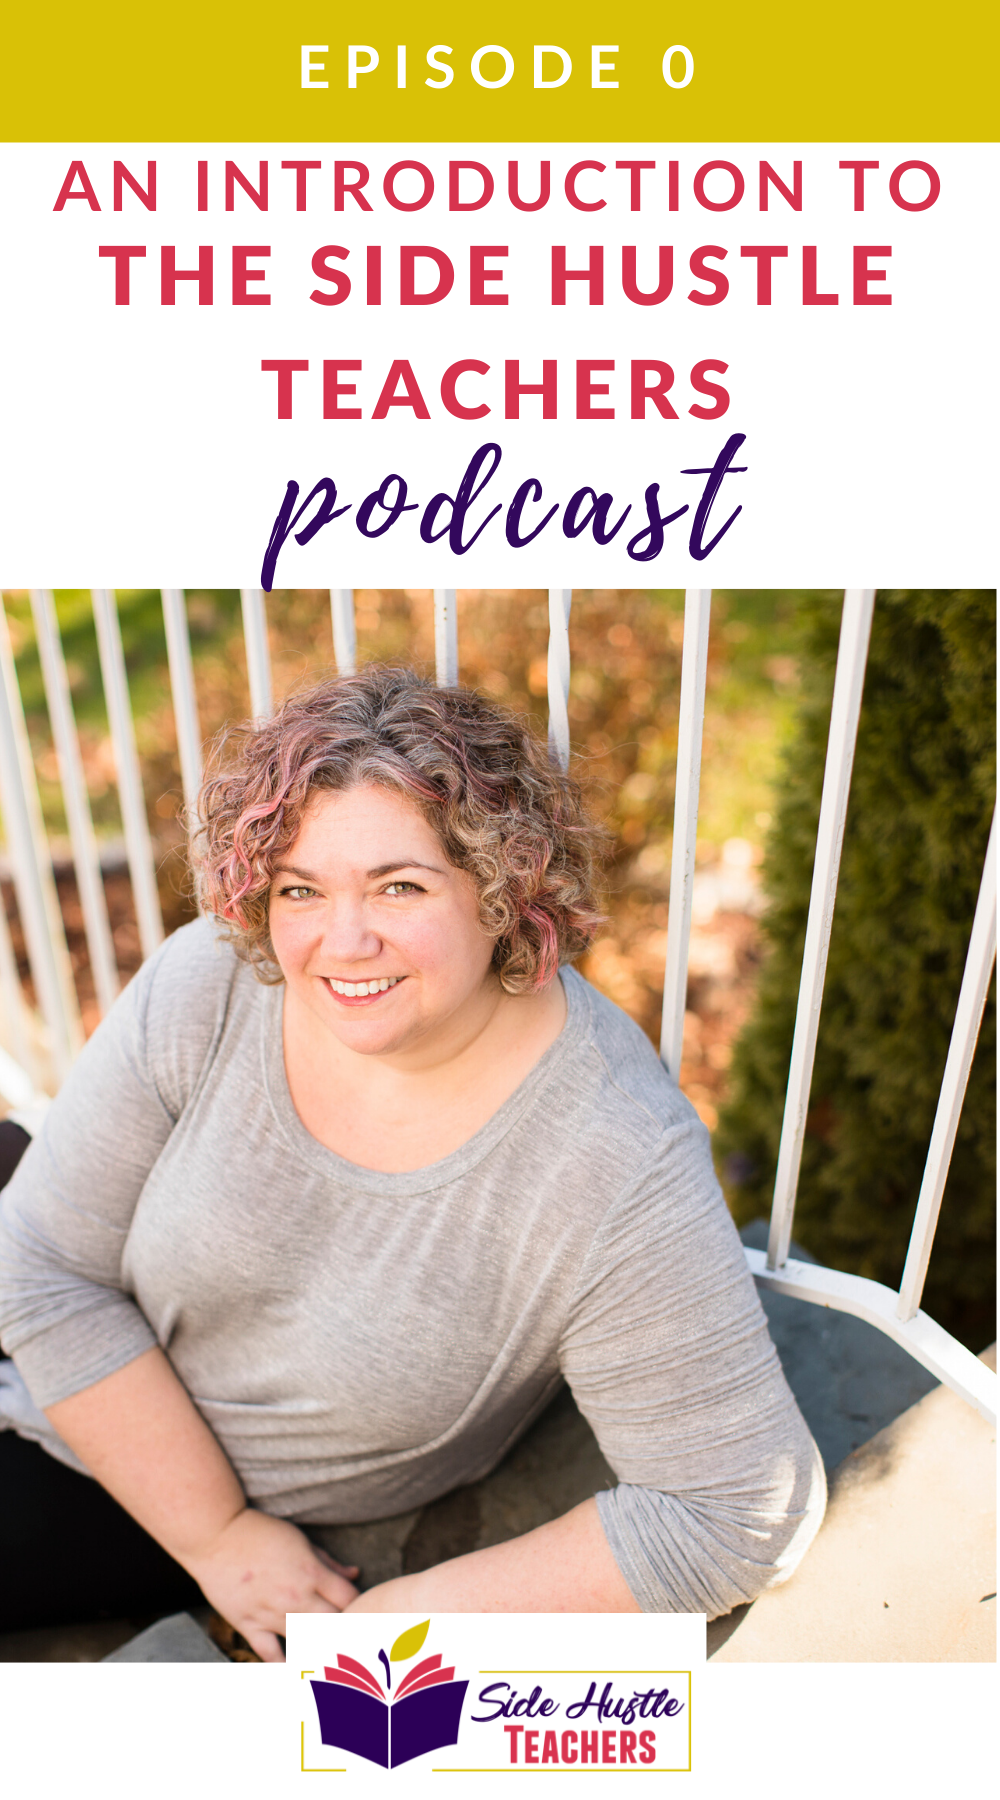 An Introduction to The Side Hustle Teachers Podcast